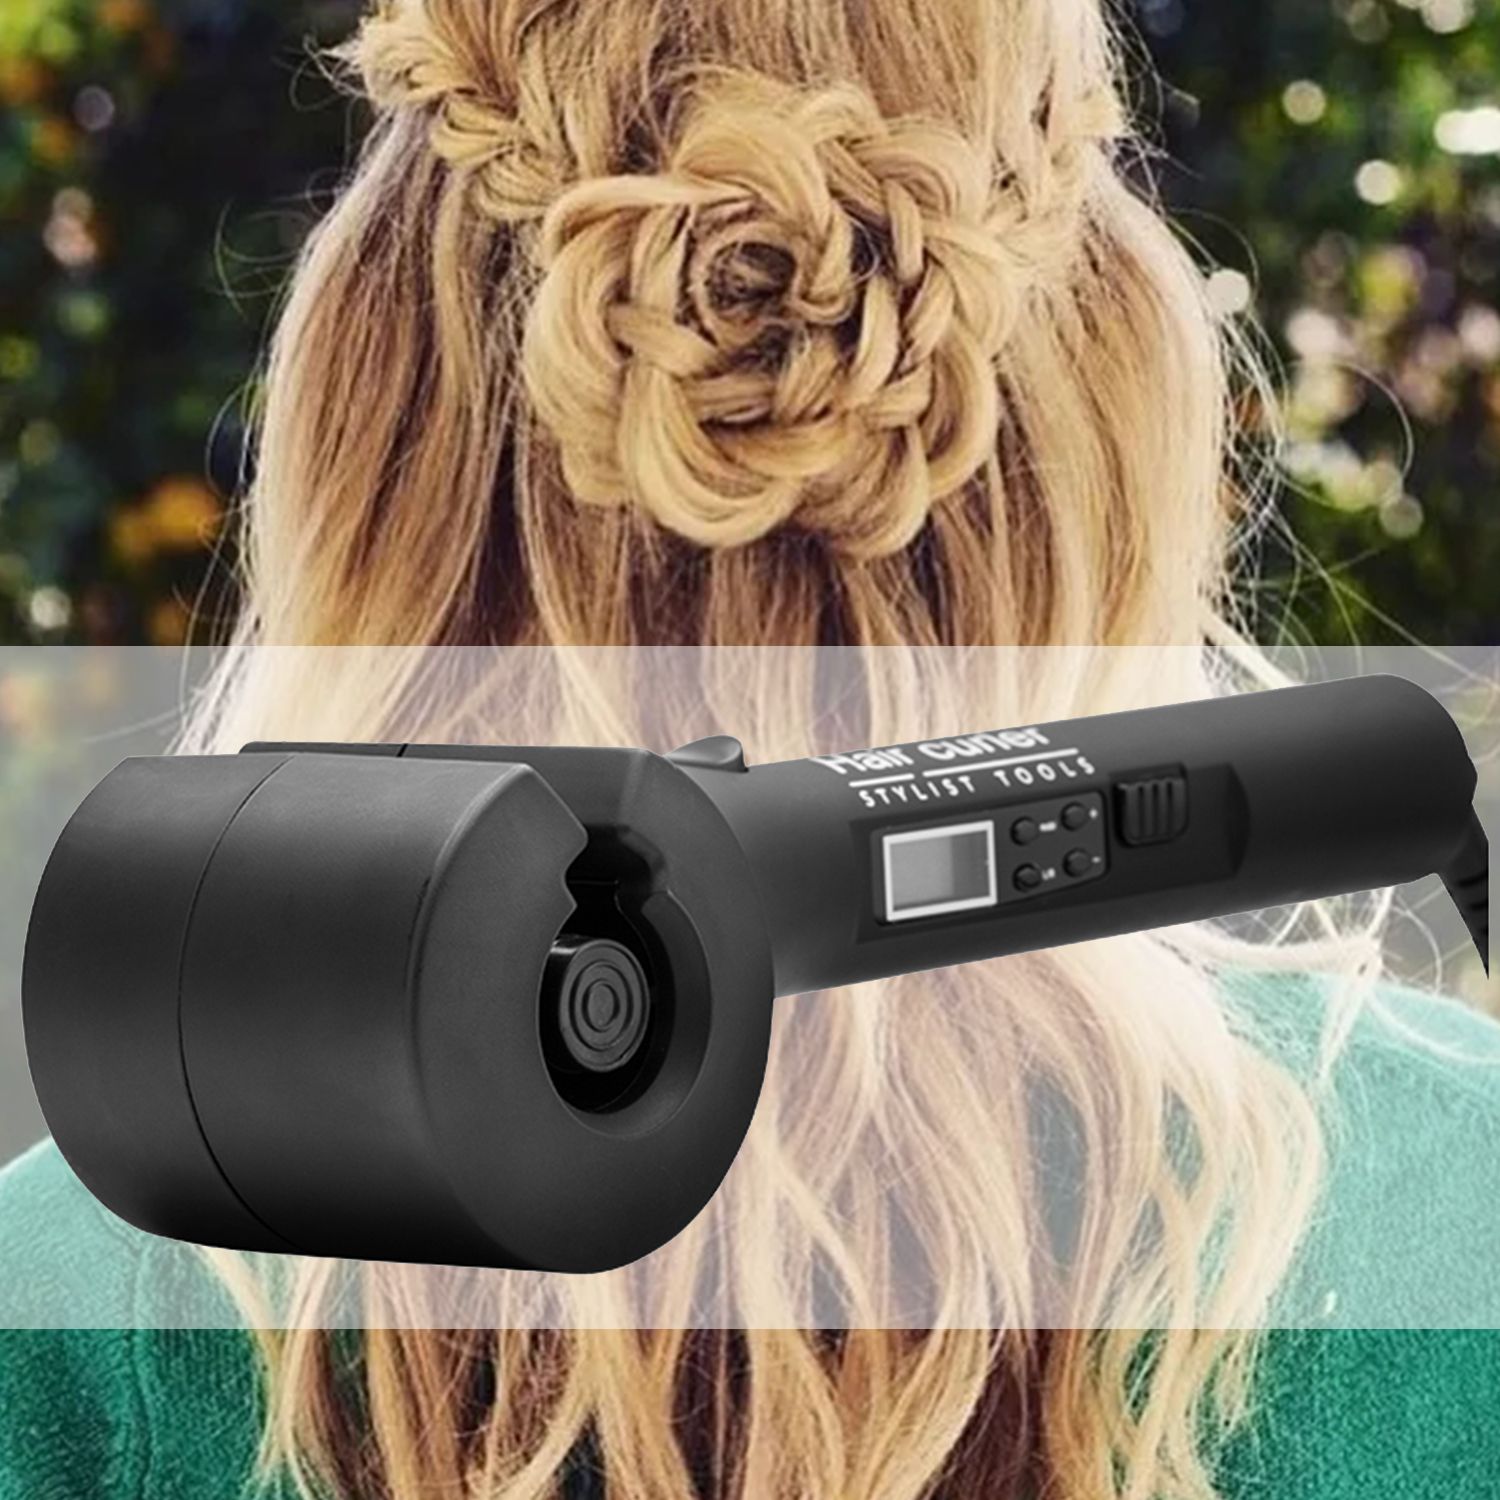 LCD Screen Automatic Hair Curling Iron With Steam Spray Ceramic Wave Wand Easy Curl Out Tool EU Plug clrlife automatic steam spray hair curler ceramic wave hair care styling tools magic curling iron hair curl styler stick eu plug